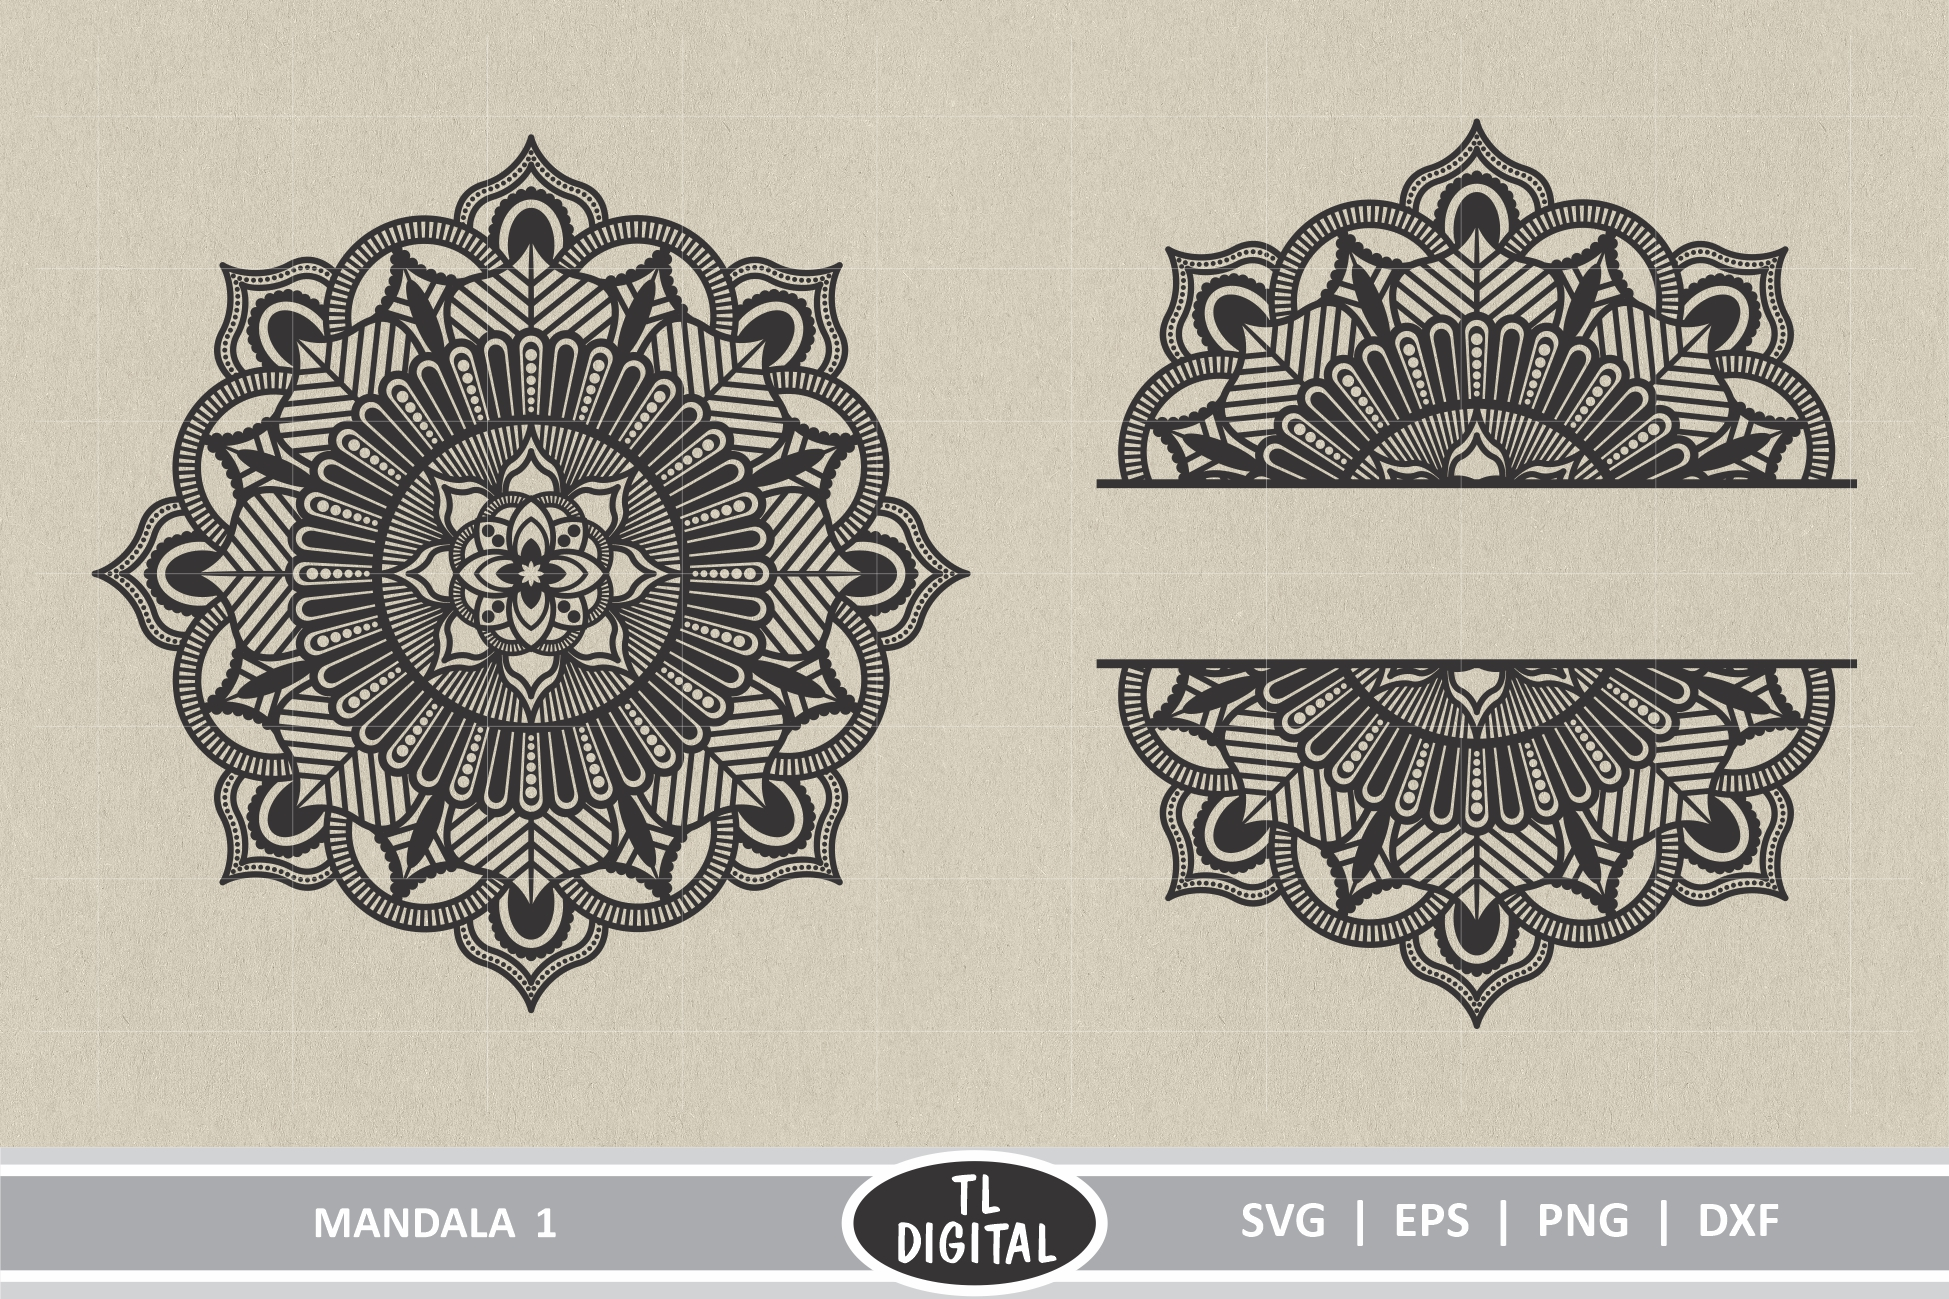 Download Free Mandala Graphics 1 Graphic By Tl Digital Creative Fabrica for Cricut Explore, Silhouette and other cutting machines.